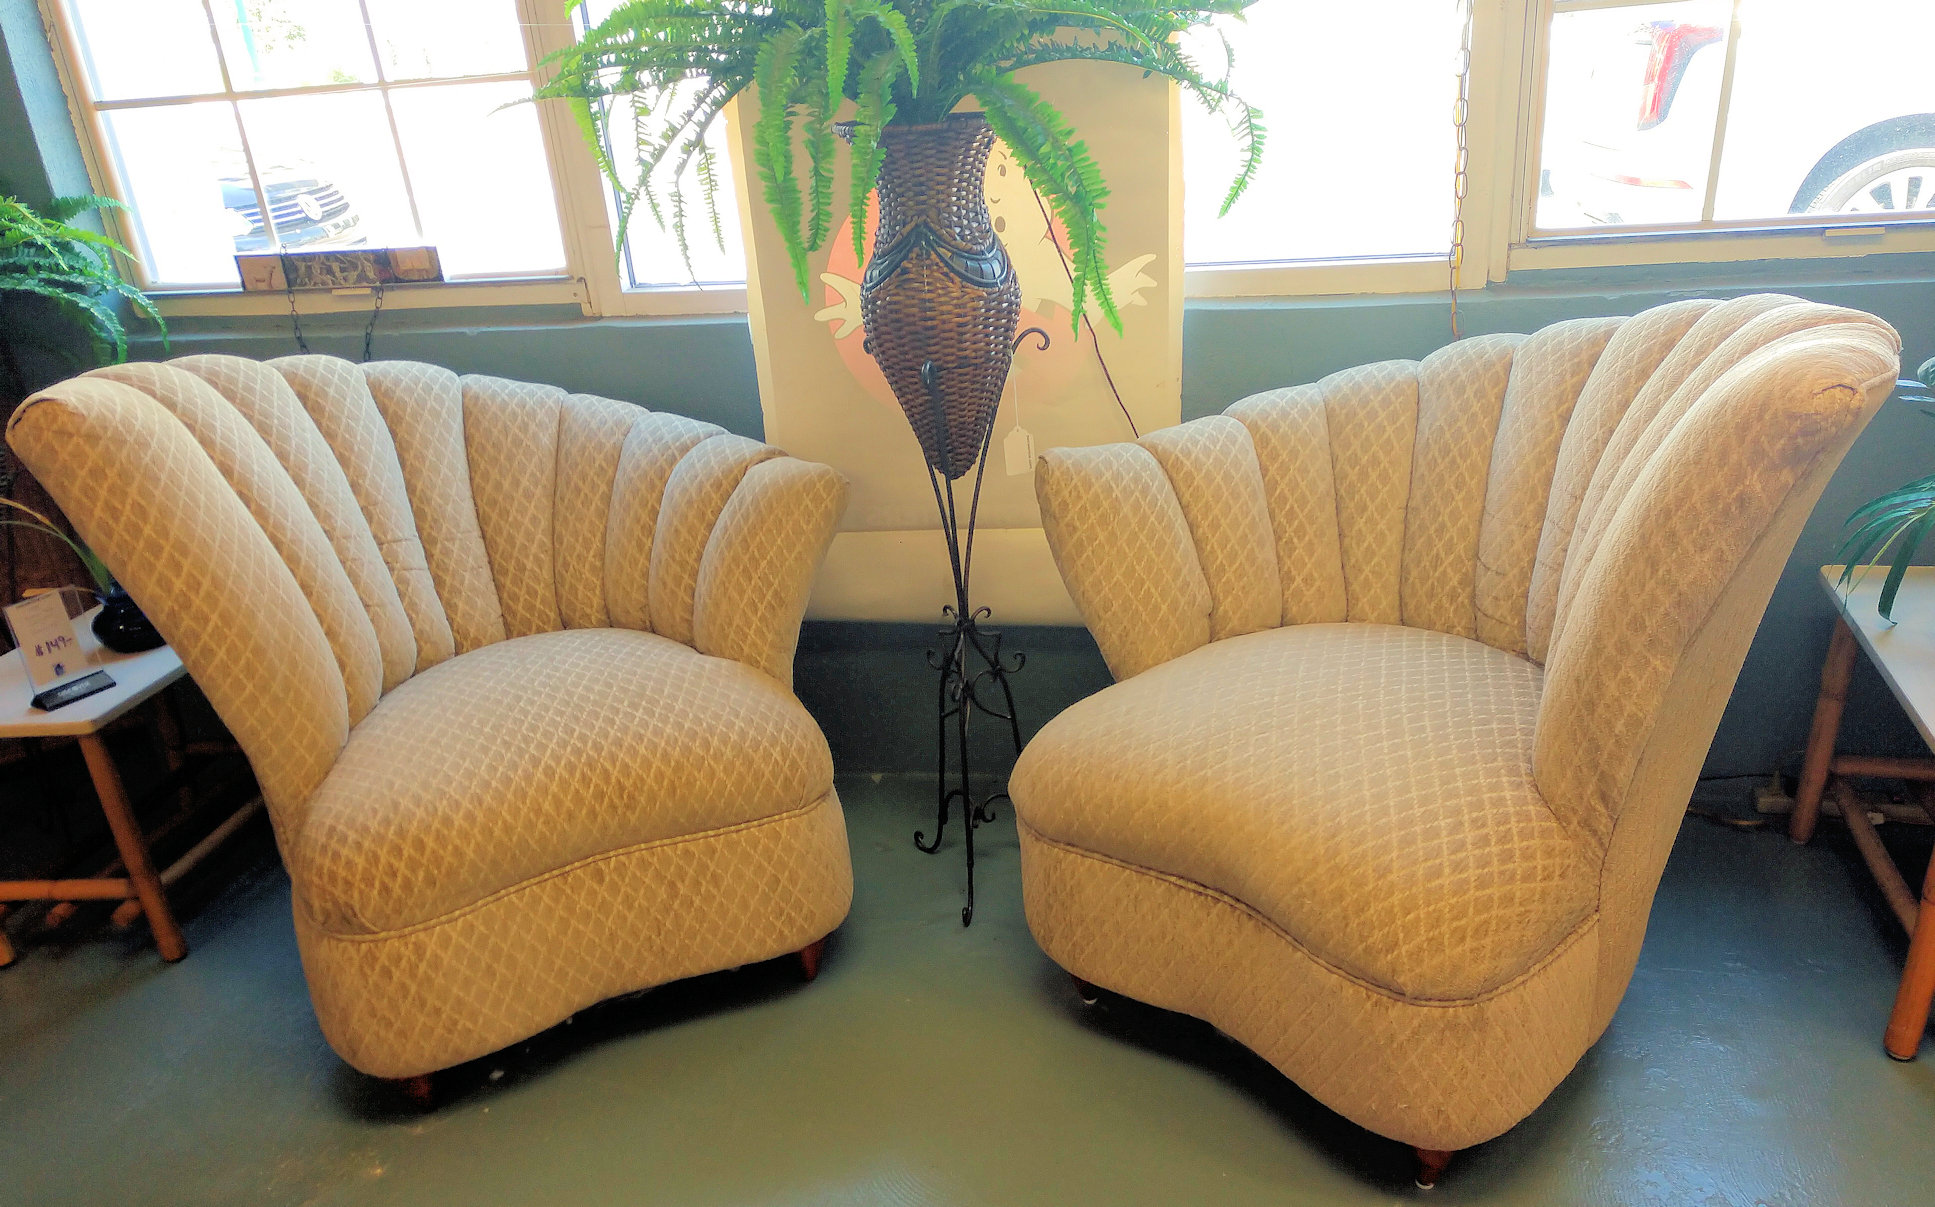 LR0278-Chairs-Scalloped-Backs